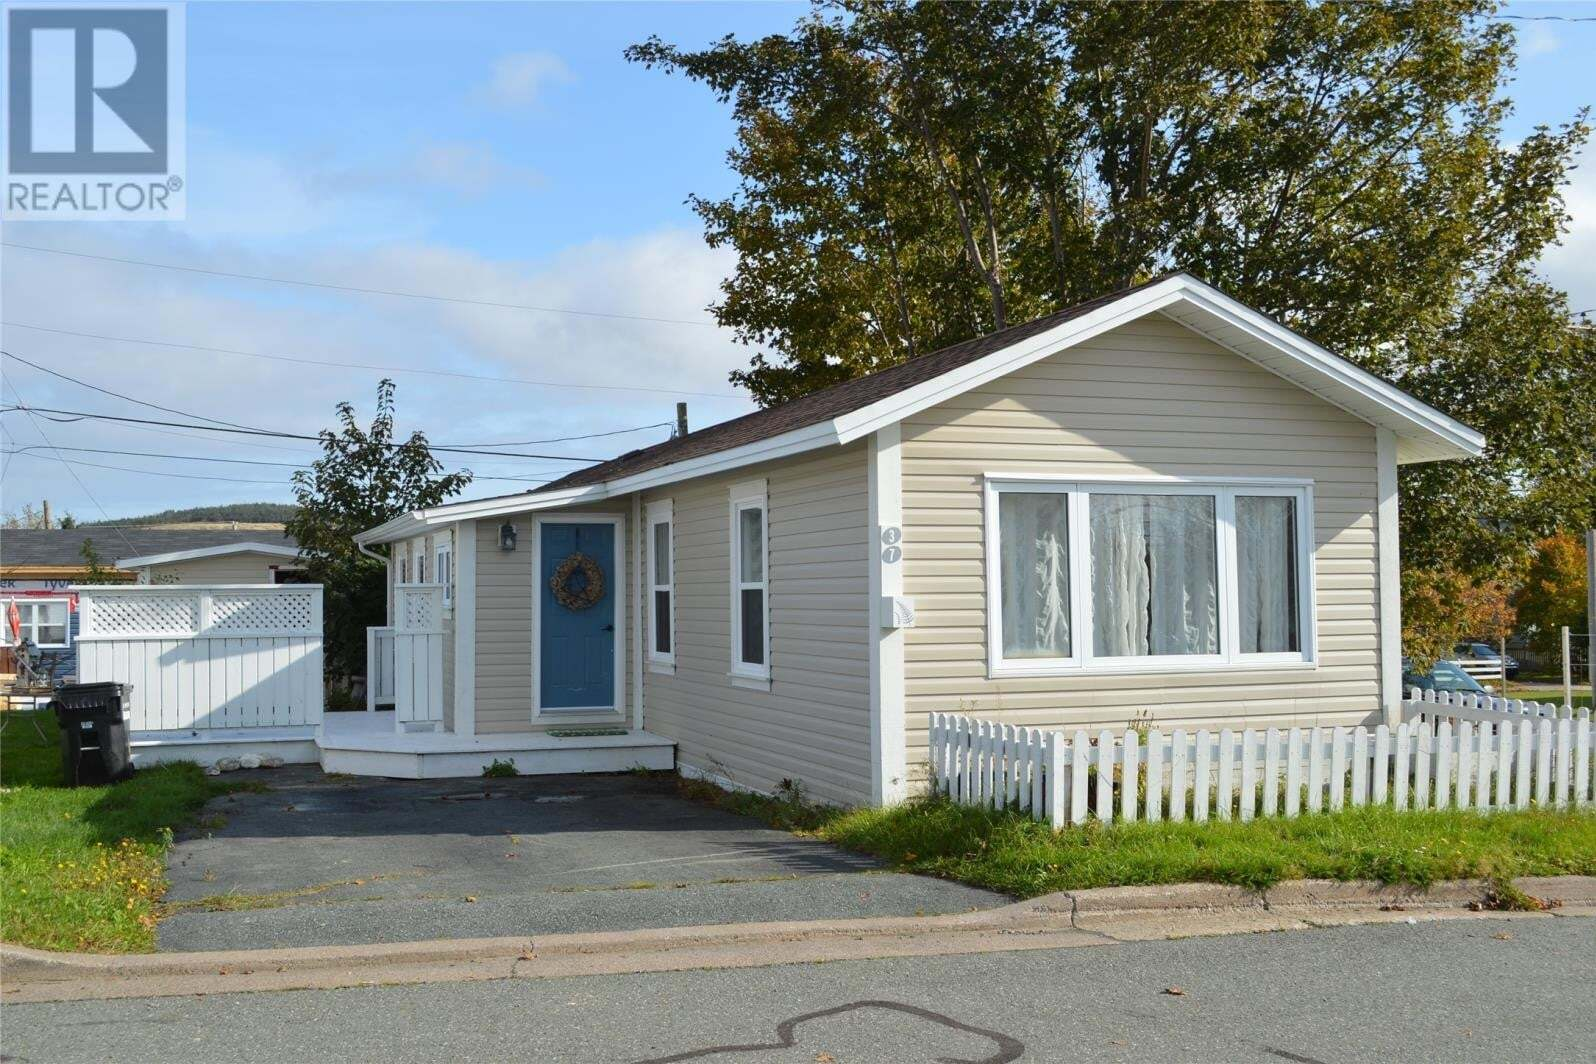 Residential property for sale at 37 Meadowbrook Park Rd St. John's Newfoundland - MLS: 1222551